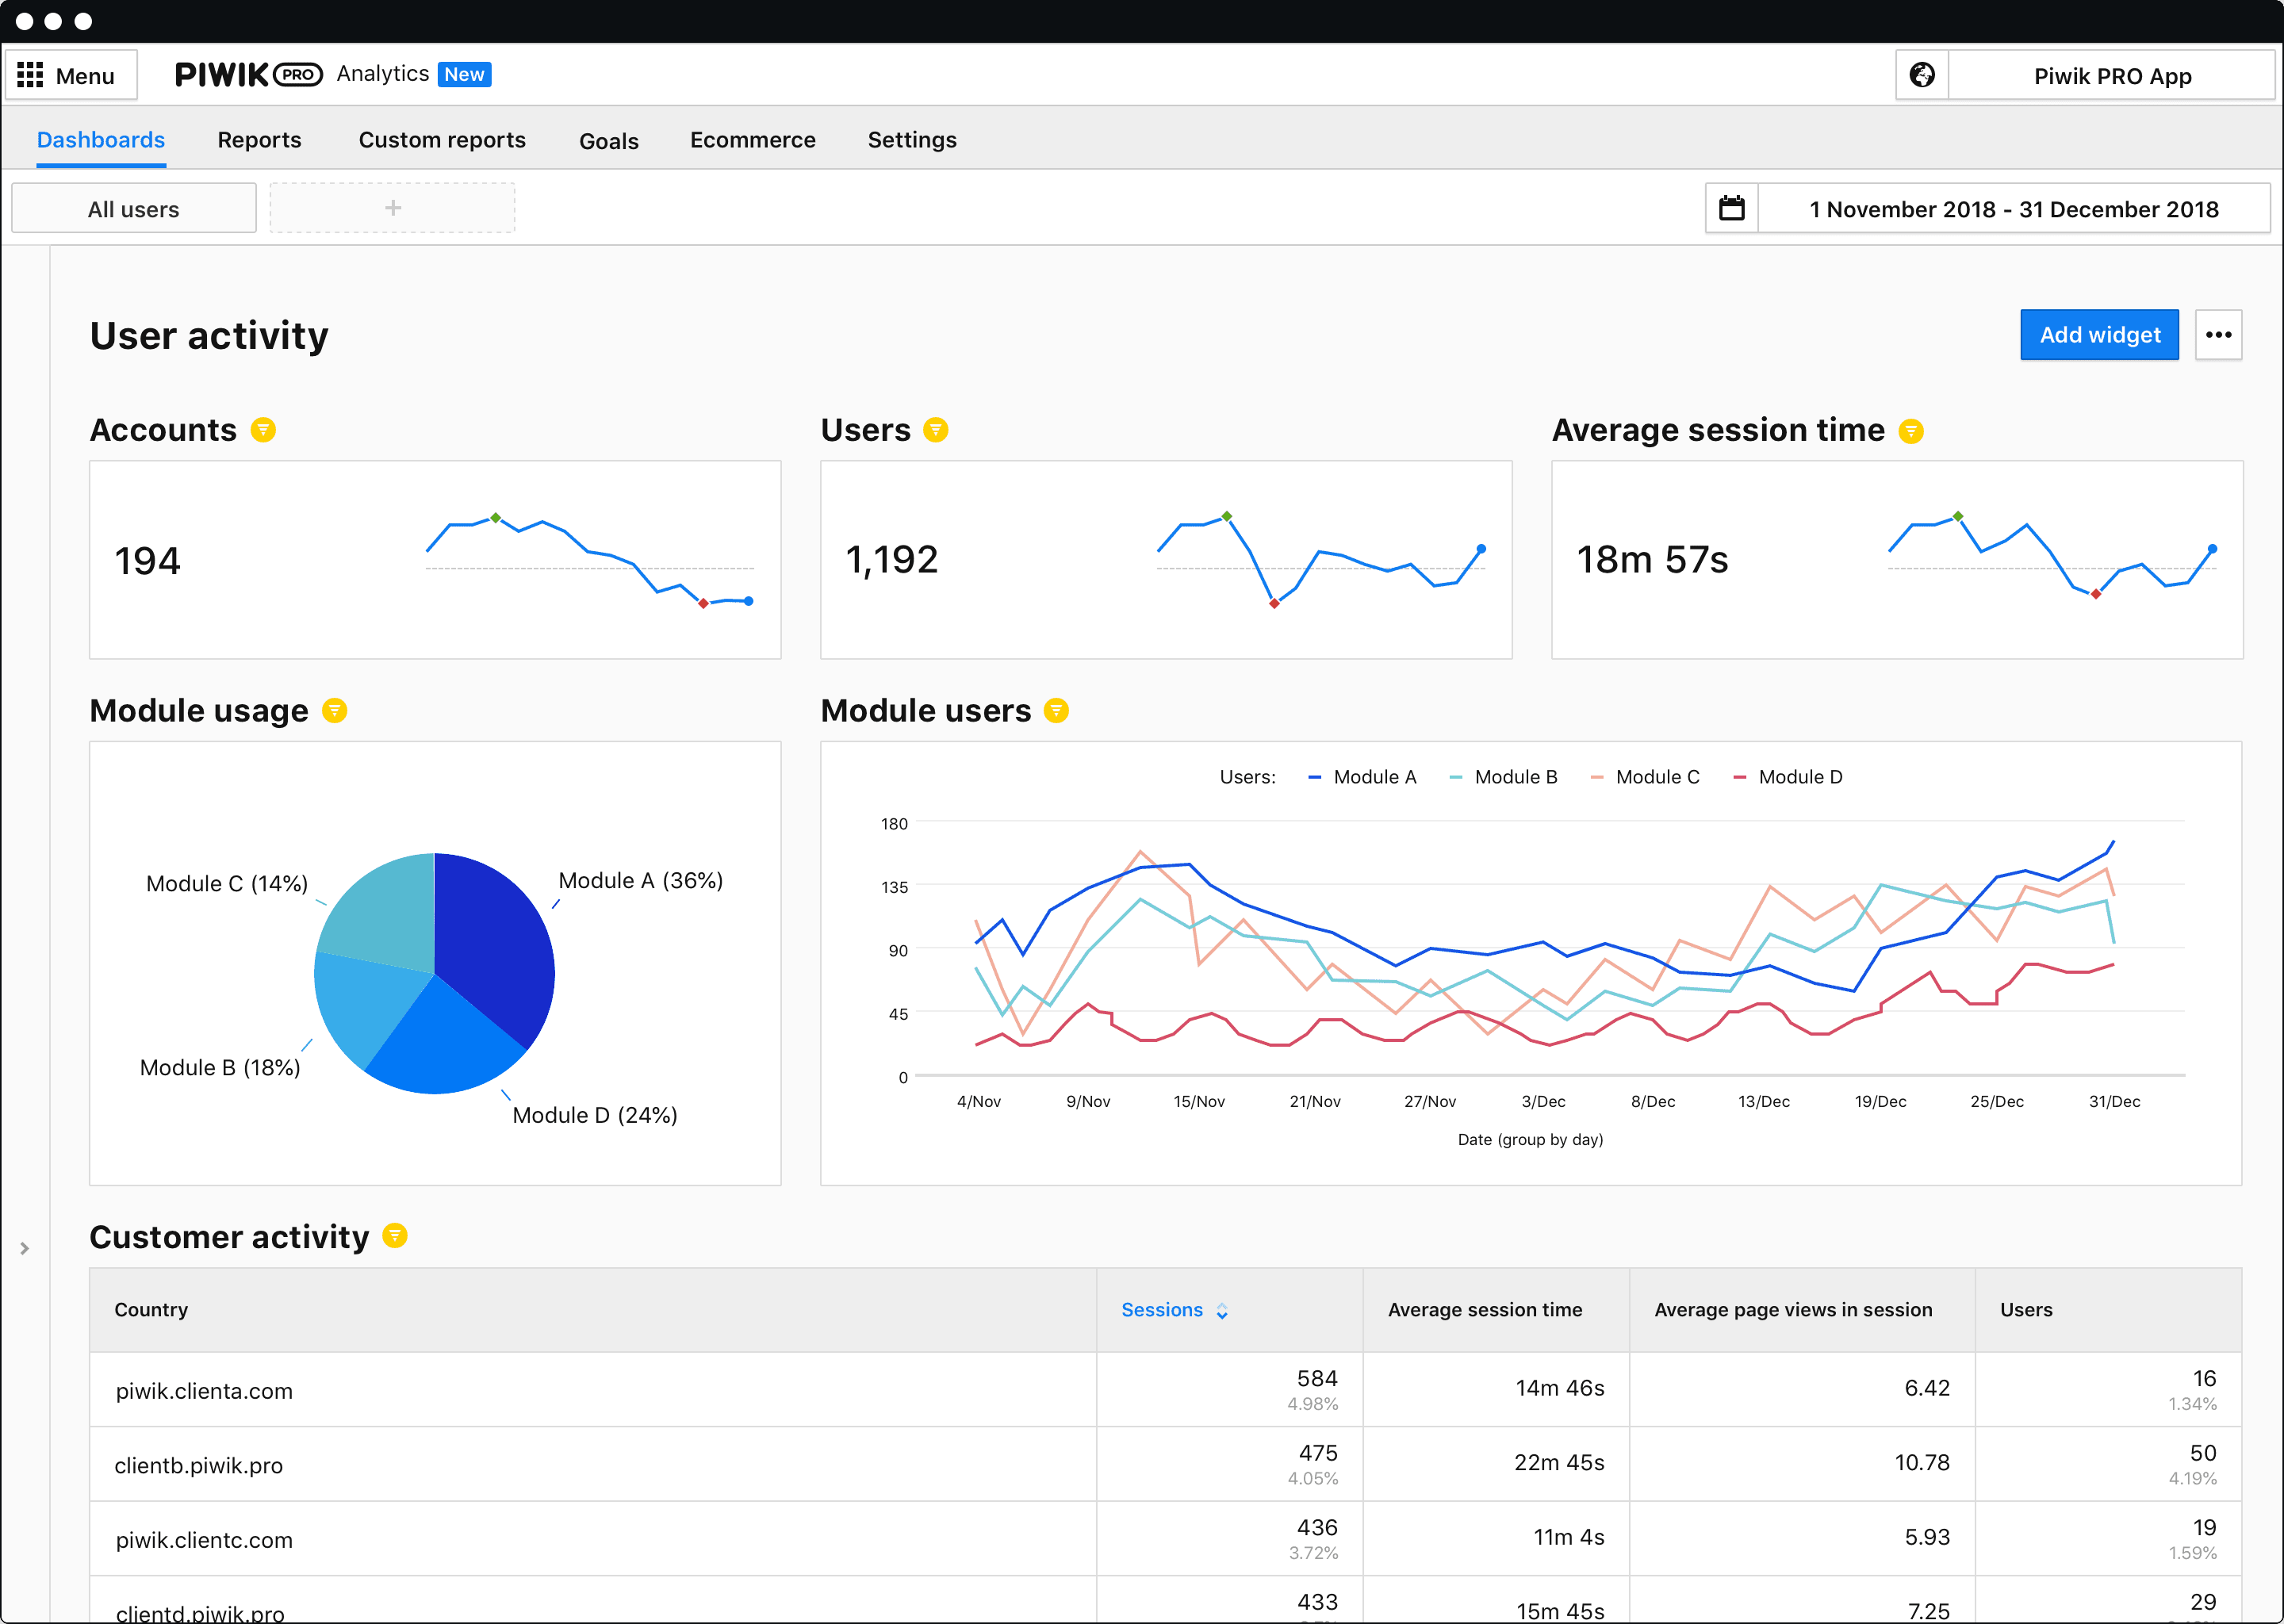 Product Analytics - Dashboards